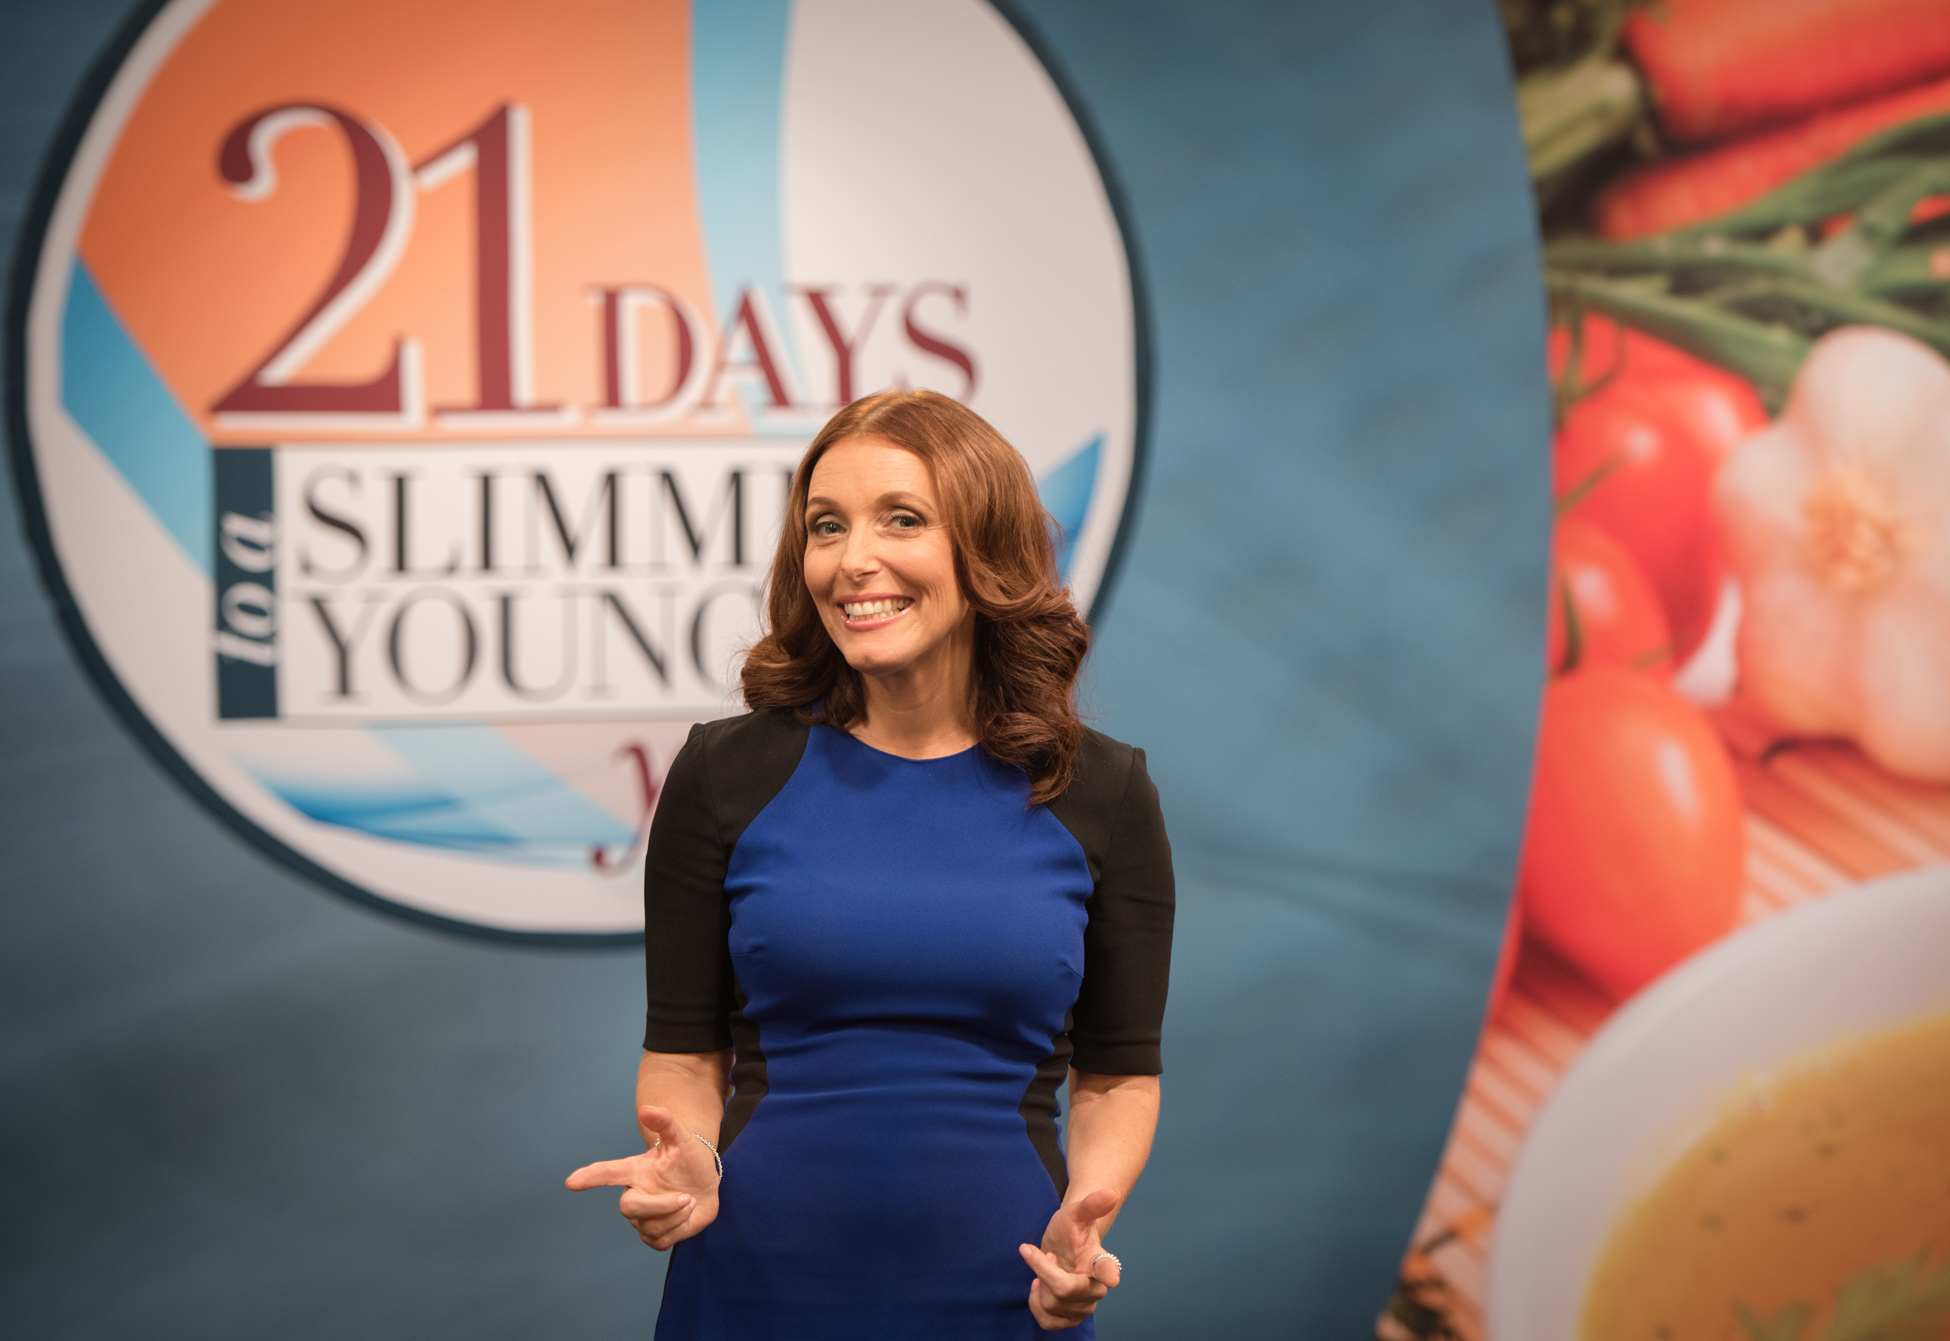 21 Days to a Slimmer Younger You with Dr. Kellyann